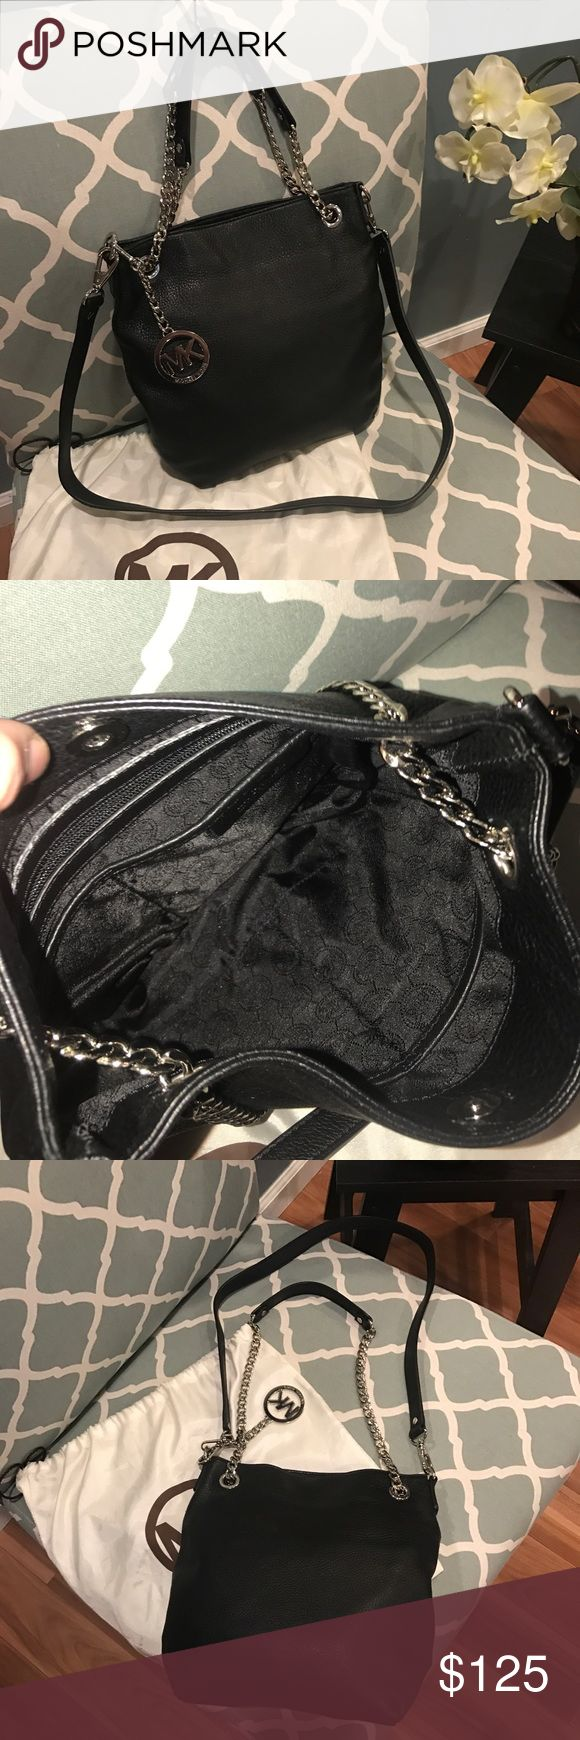 Michael kors black leather bag price dropped!!! Black mk purse can be crossbody or shoulder or carry. This bag is gorgeous soft leather... it's in excellent condition. Small spot but seriously unrecognizable. The interior is flawless ... this was very well taken care of. Just lowered price ... 3 days only!!!!! MICHAEL Michael Kors Bags